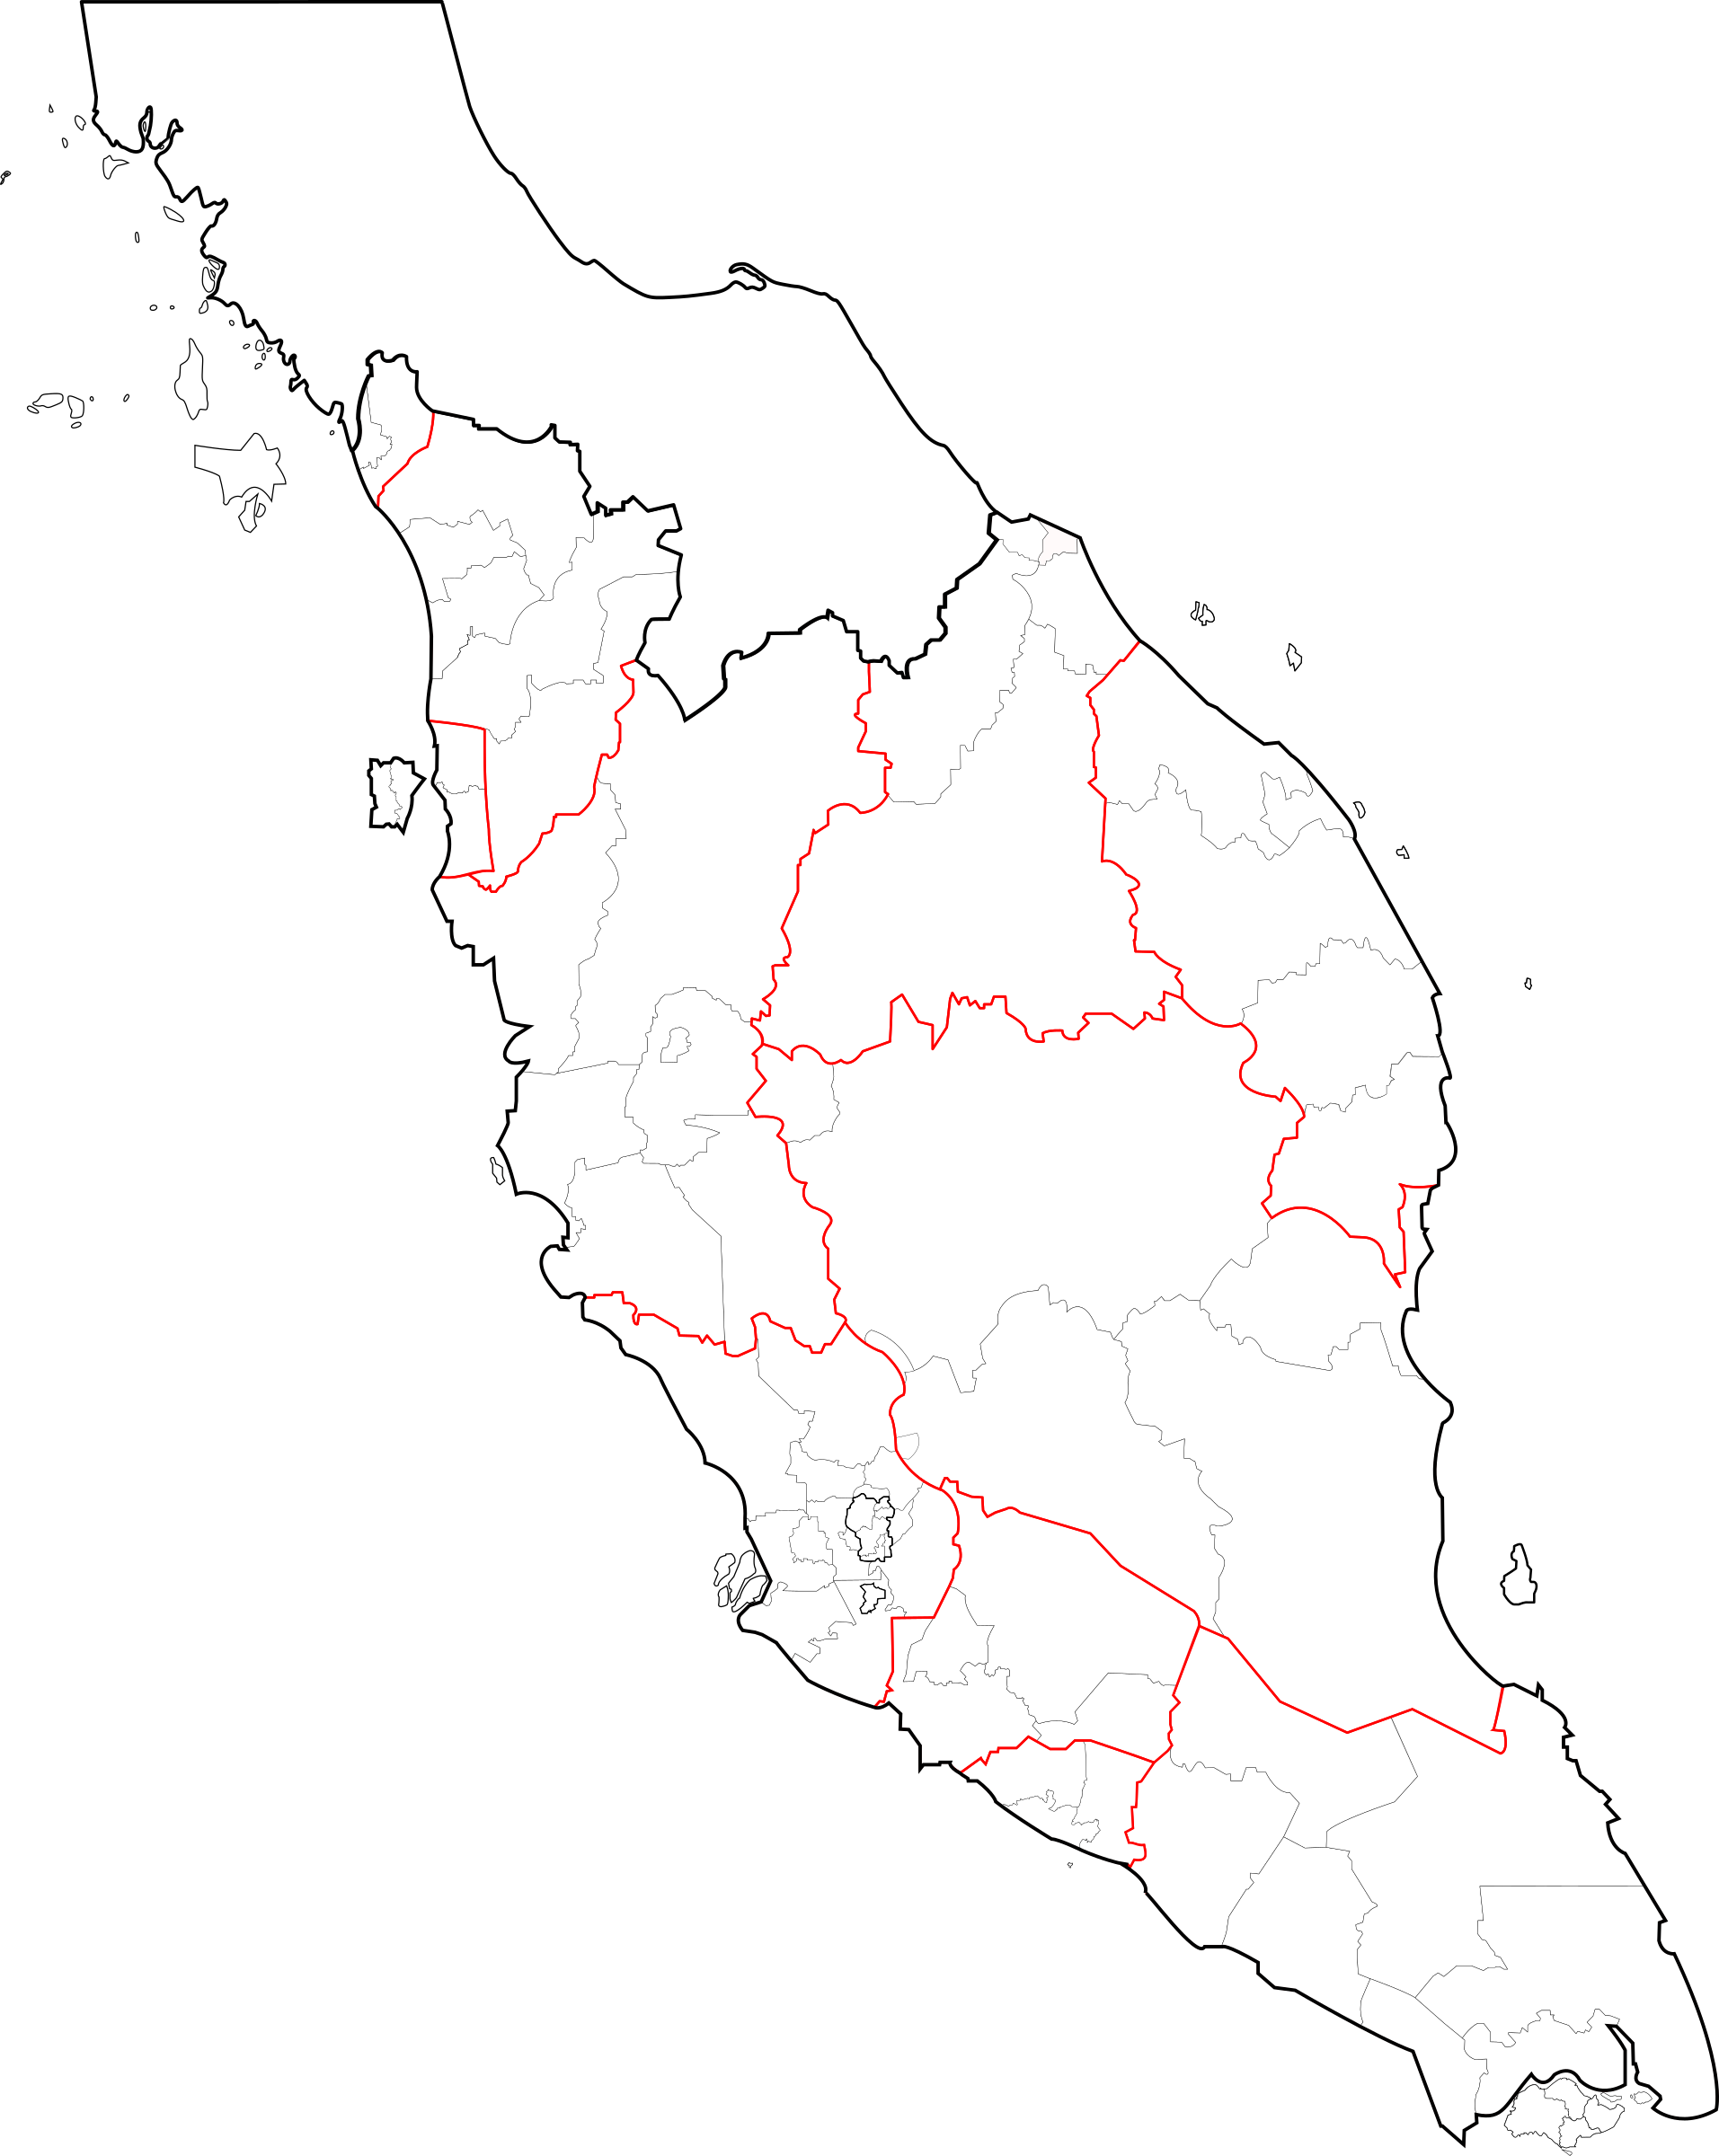 Clipart Blank Map Of Peninsular Malaysia Fixed And Updated - Thailand blank map